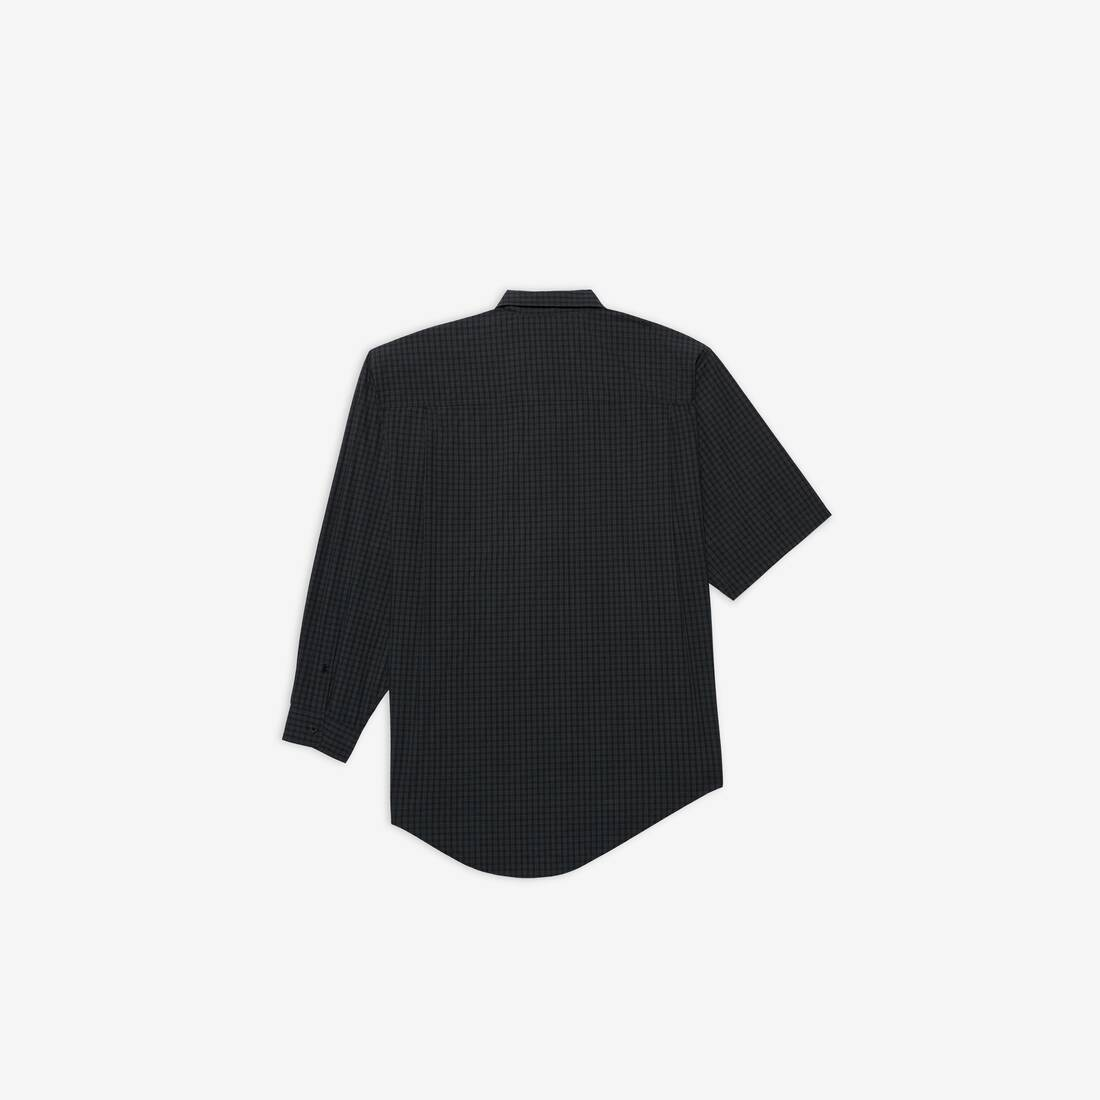 Display zoomed version of asymmetric shirt 2